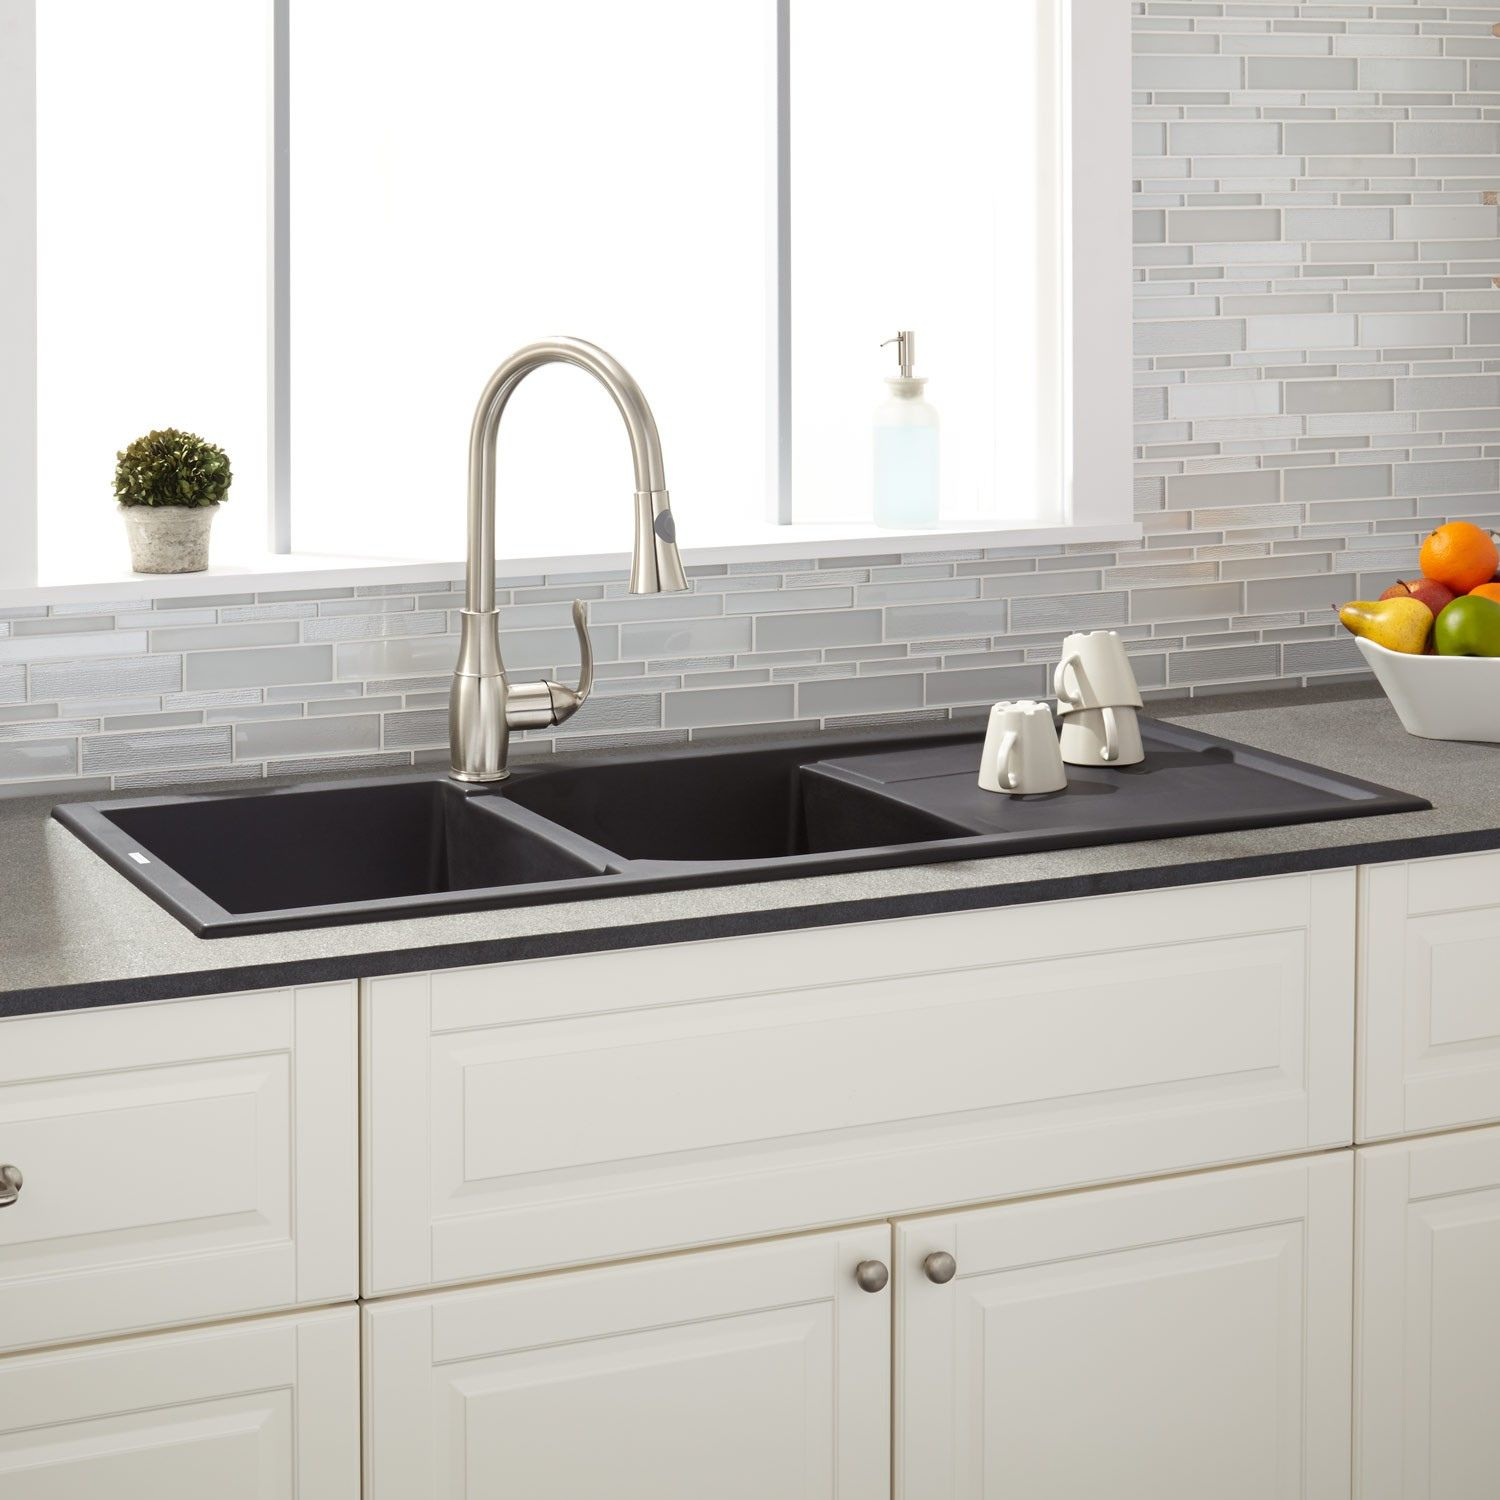 100+ Double Kitchen Sink with Drainboard - Small Kitchen Remodel ...